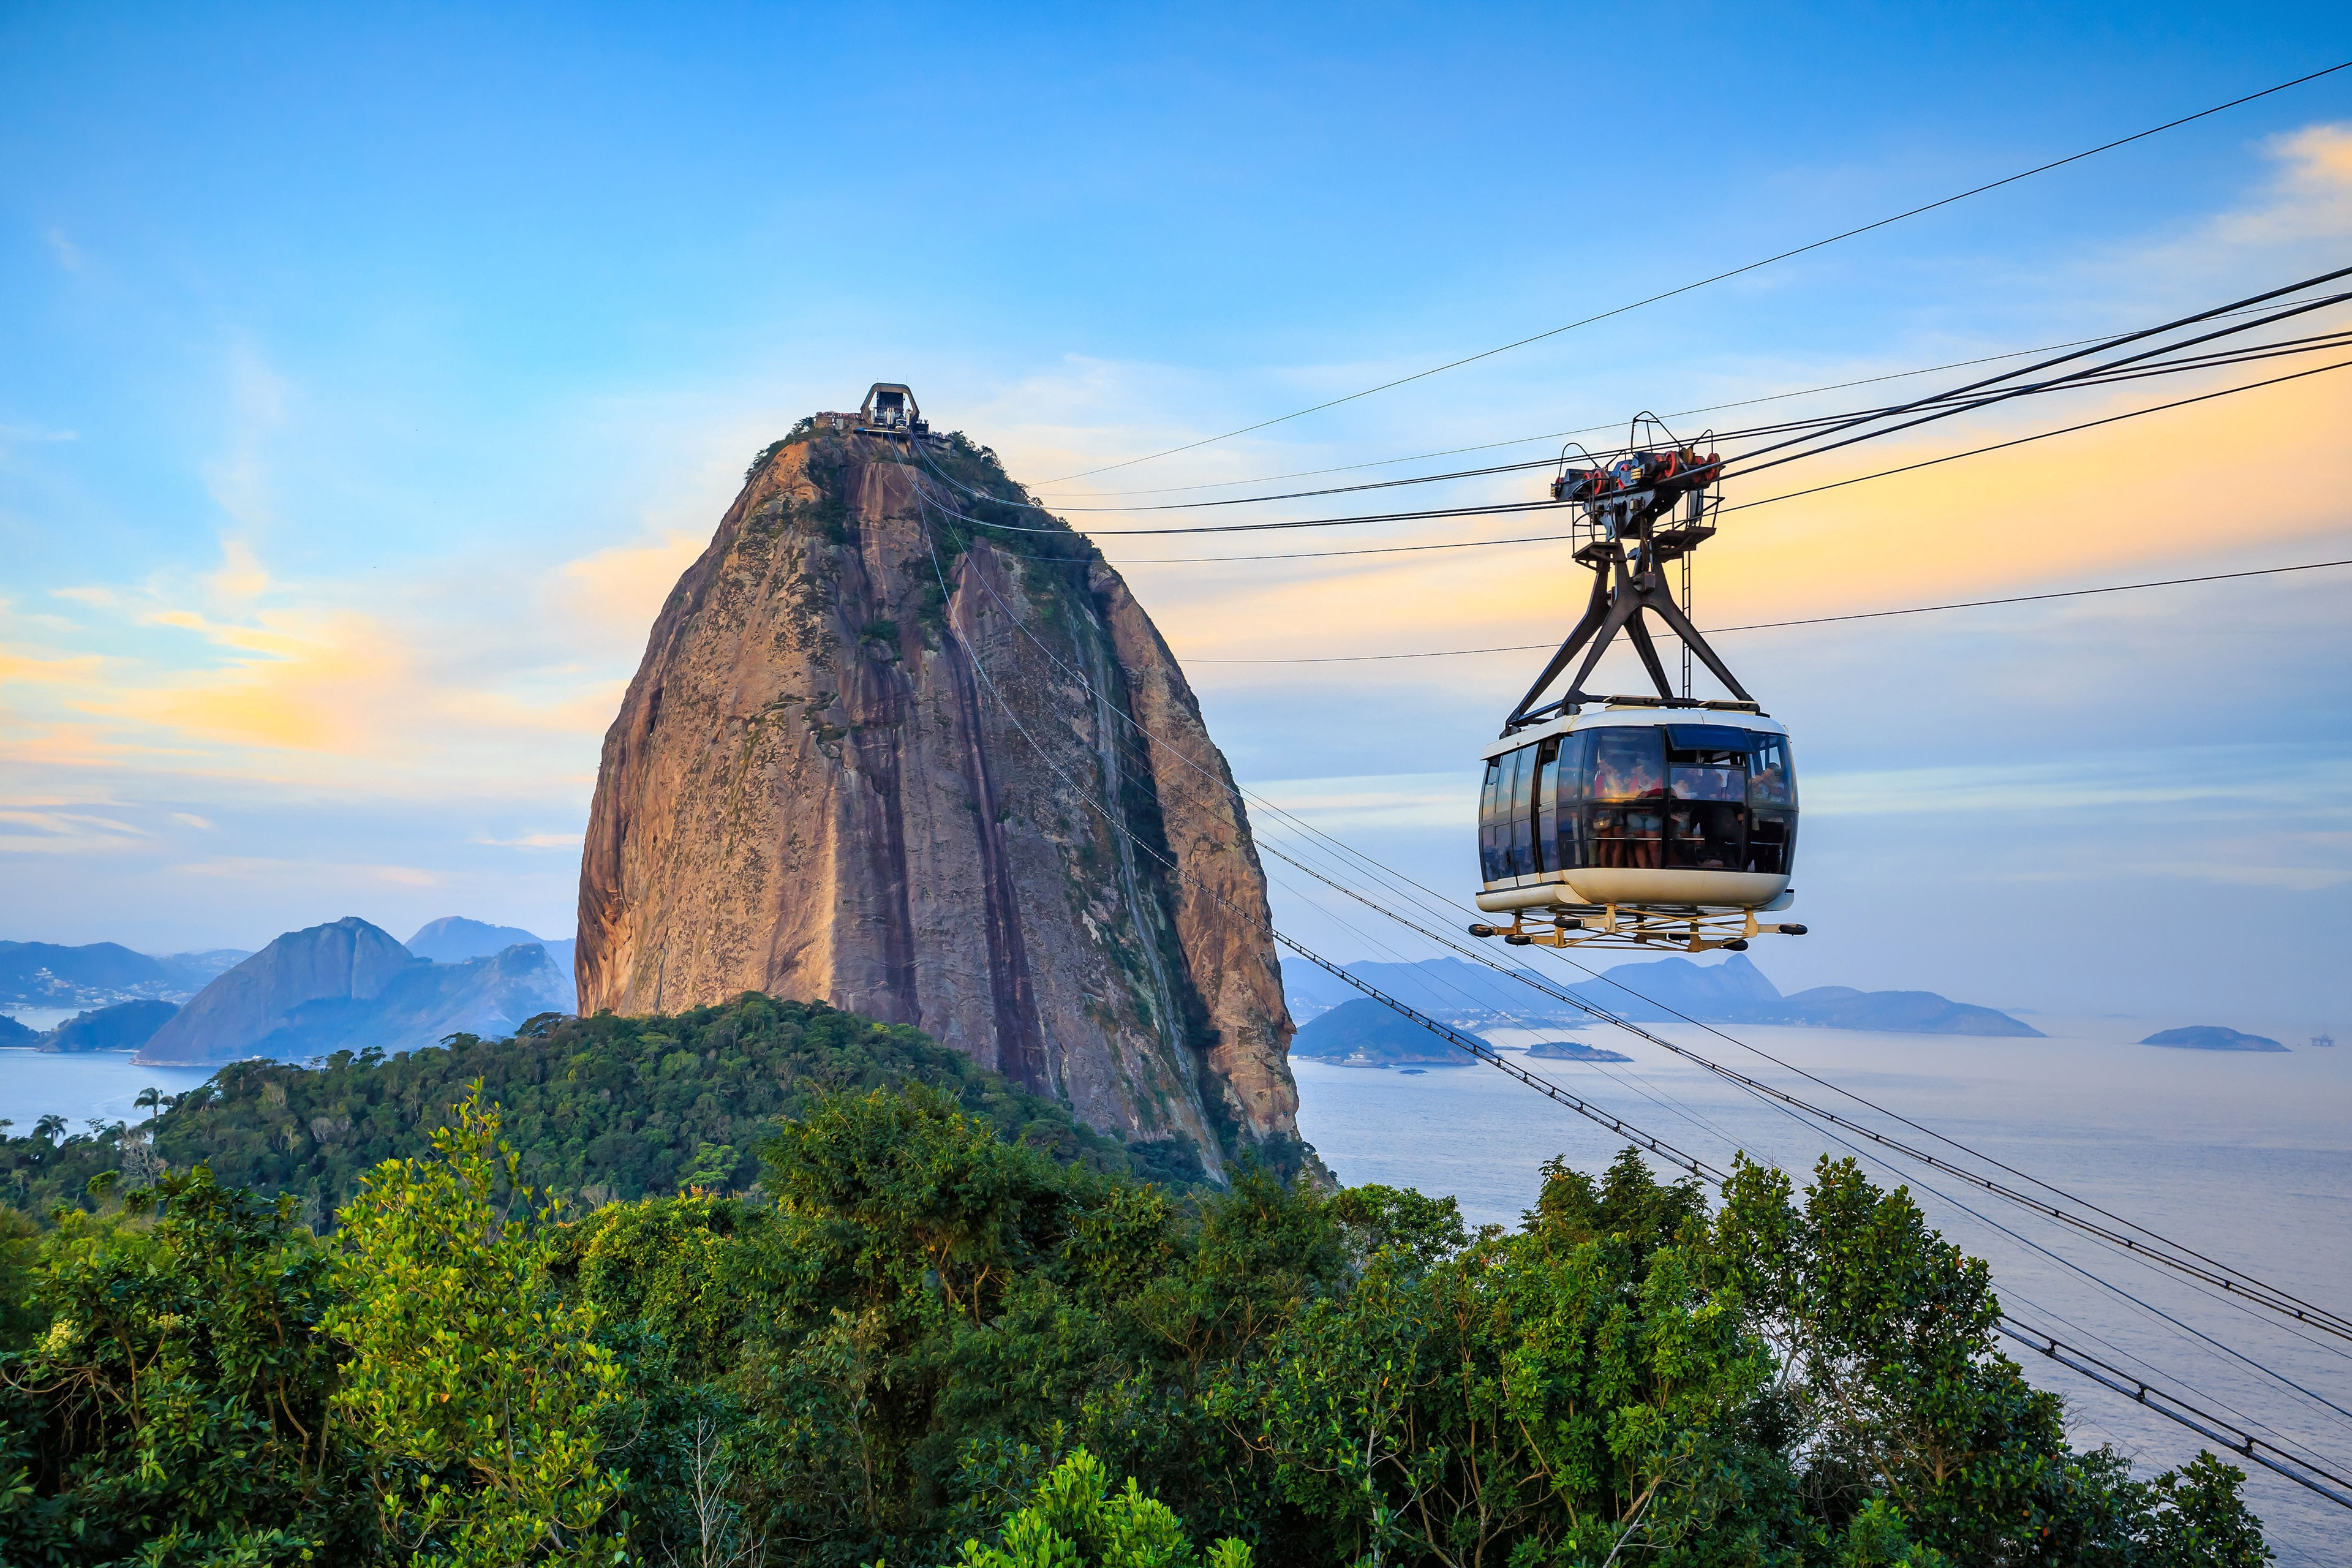 Cable car up to Sugarloaf mountain